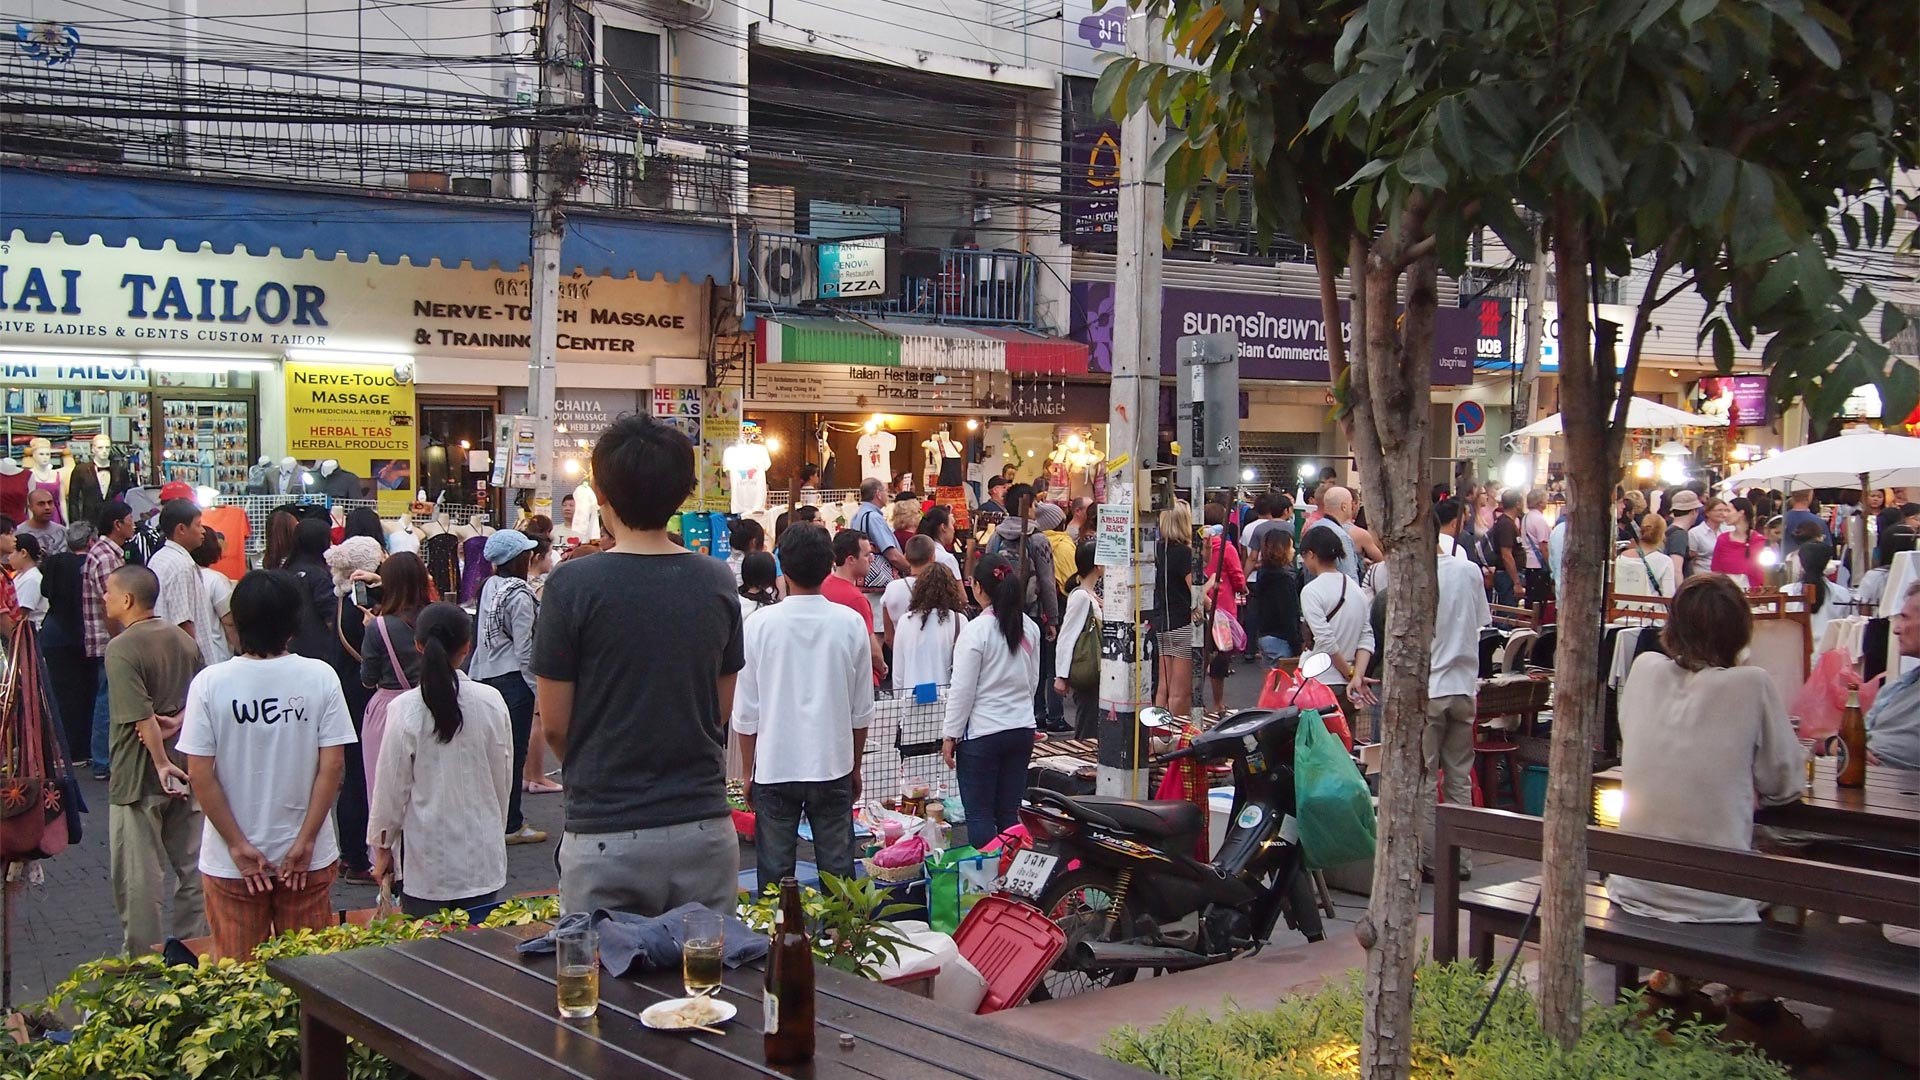 People when Thai National anthem played (source : homeiswhereyourbagis.com)